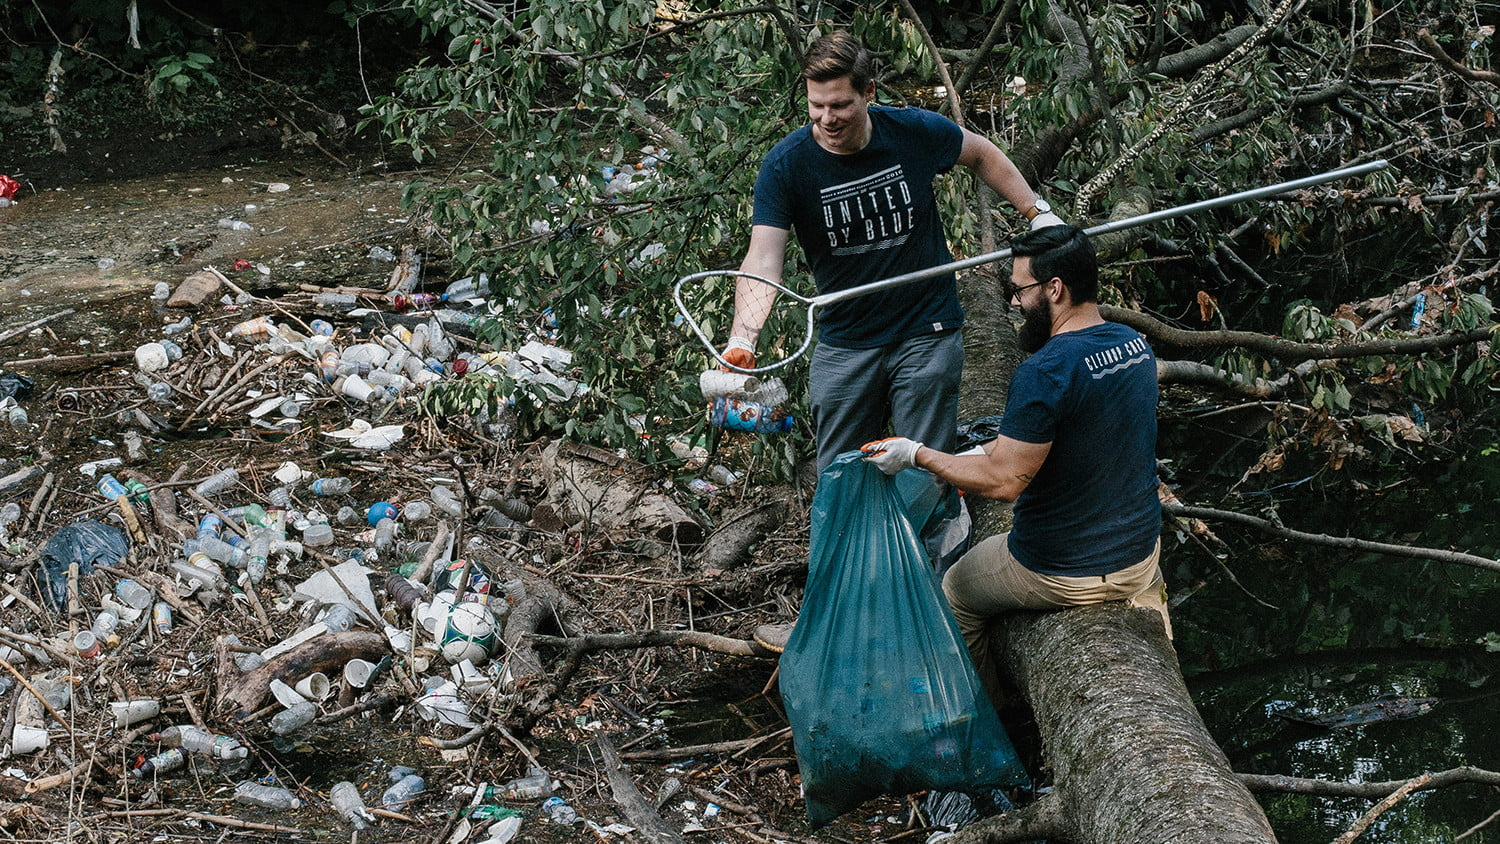 United By Blue billion's cleanups